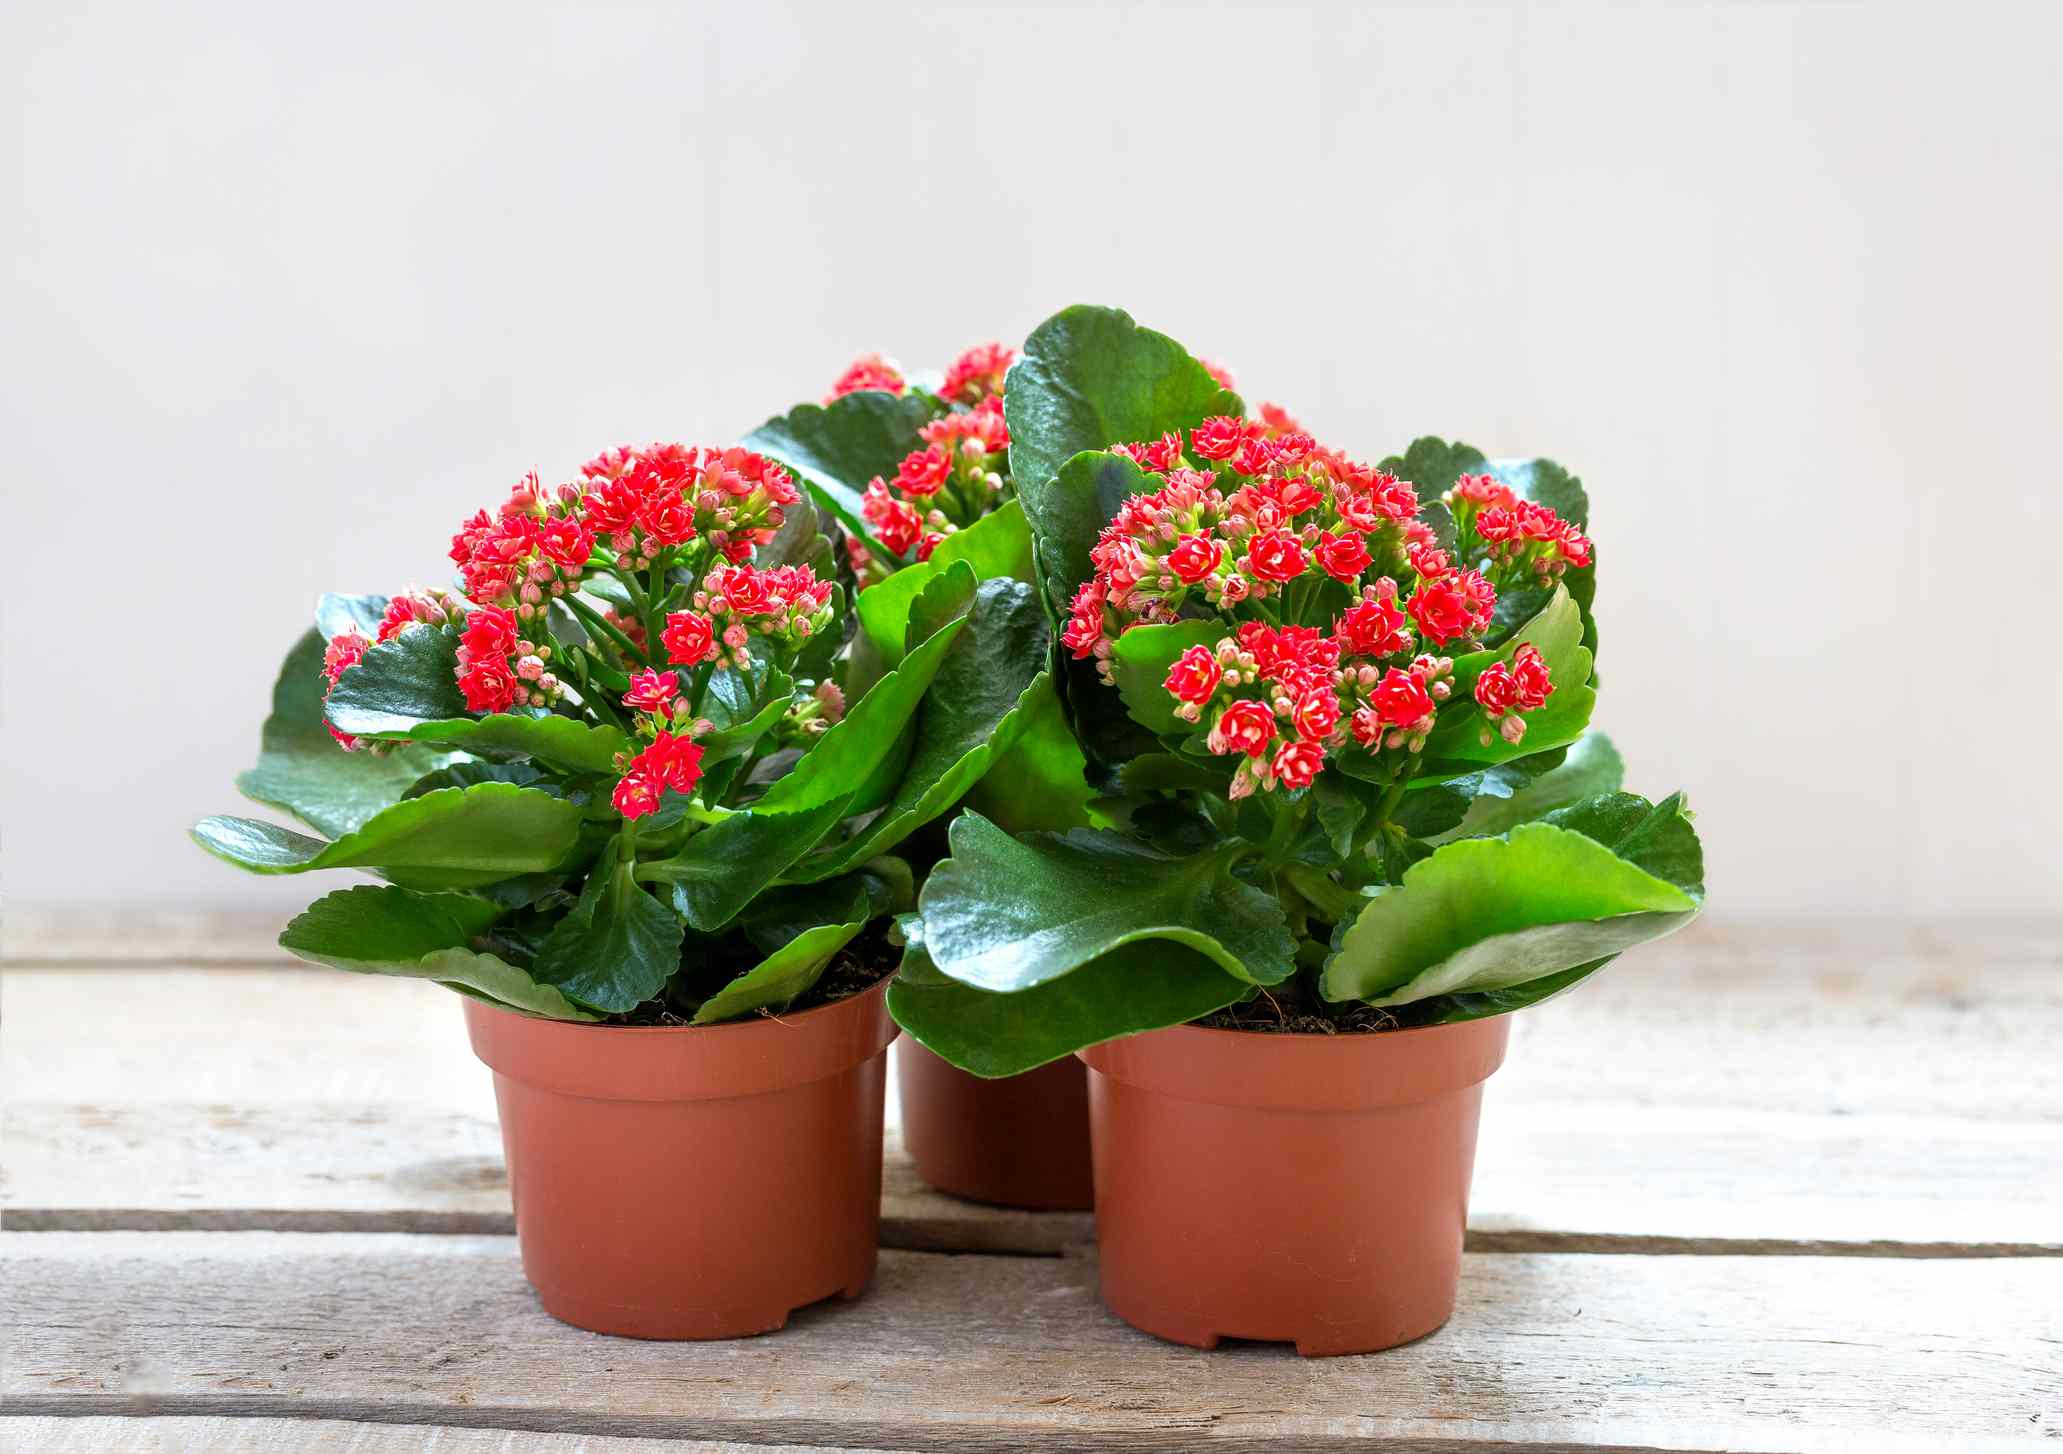 Red Kalanchoe flowers on a wooden background.